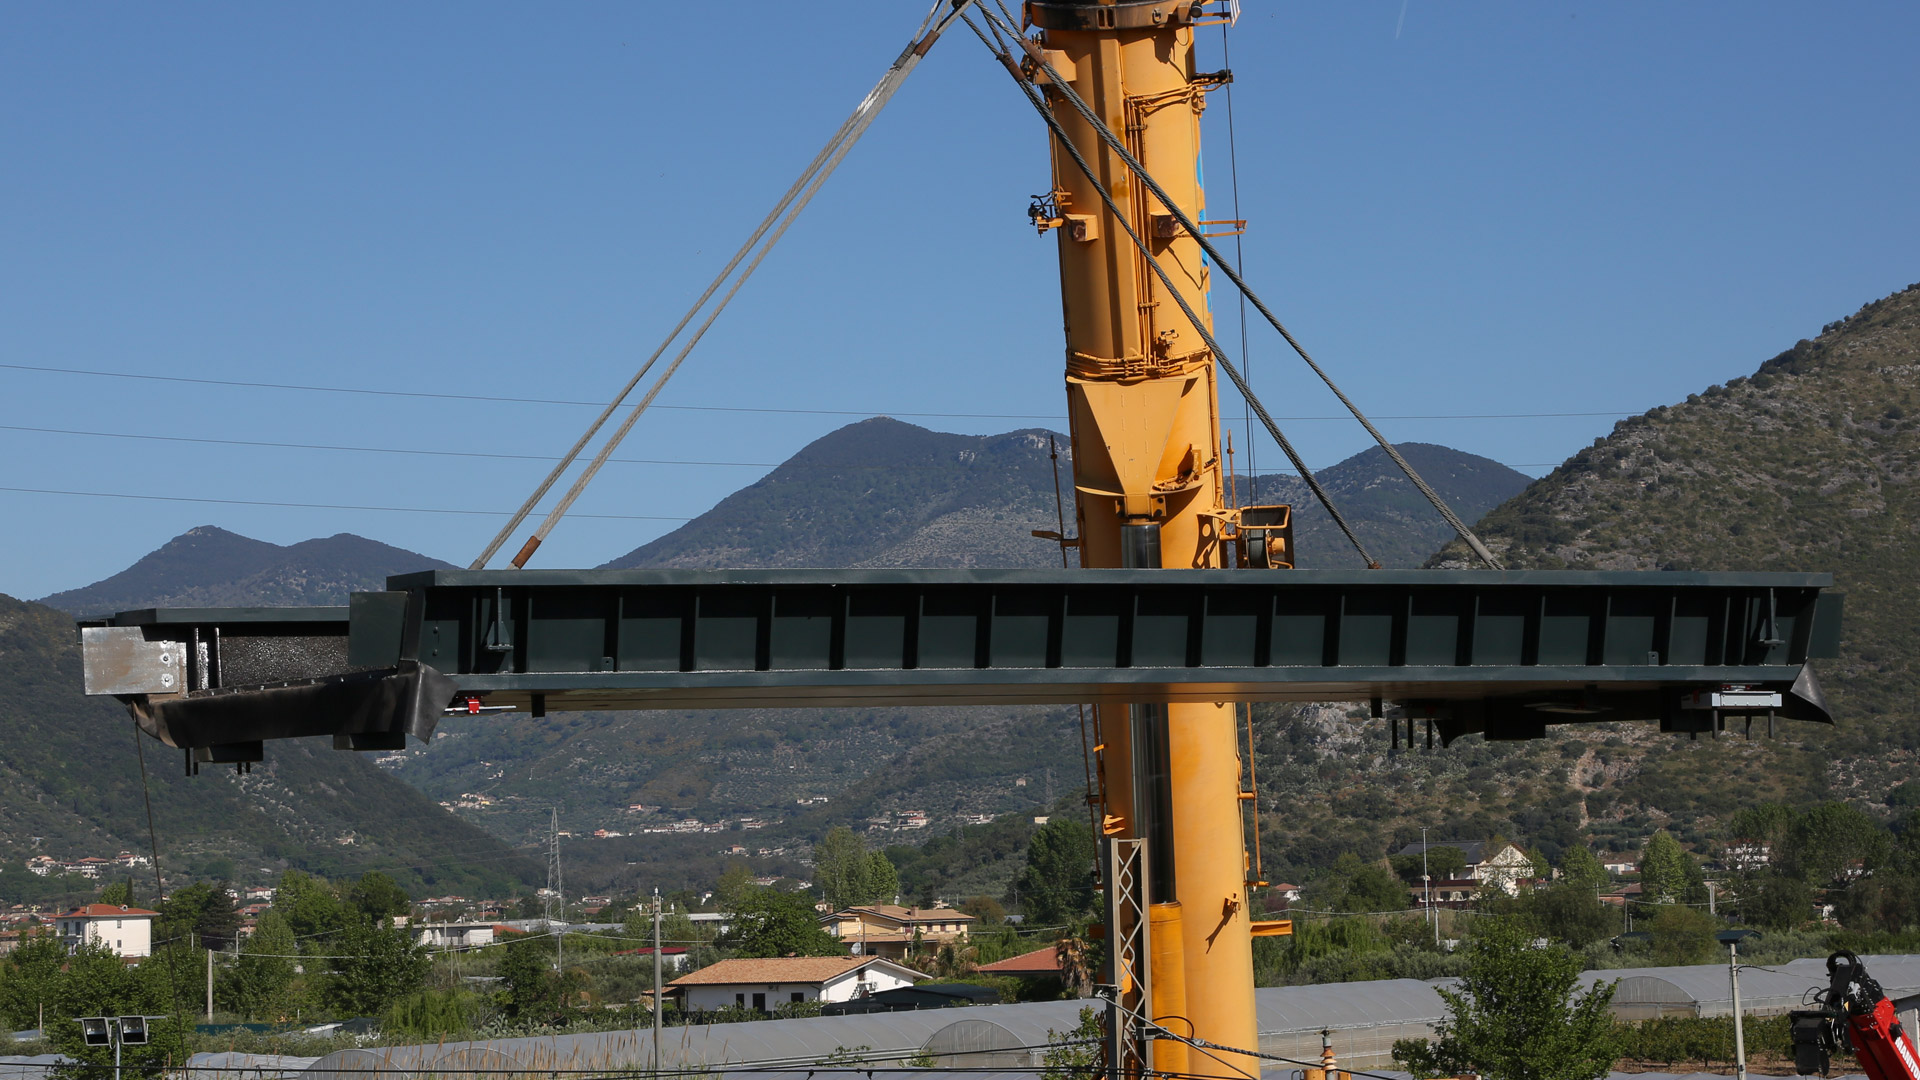 san-magno-ponte-ferroviario-sollevamento-metal-engineering-carpenteria-metallica-civile